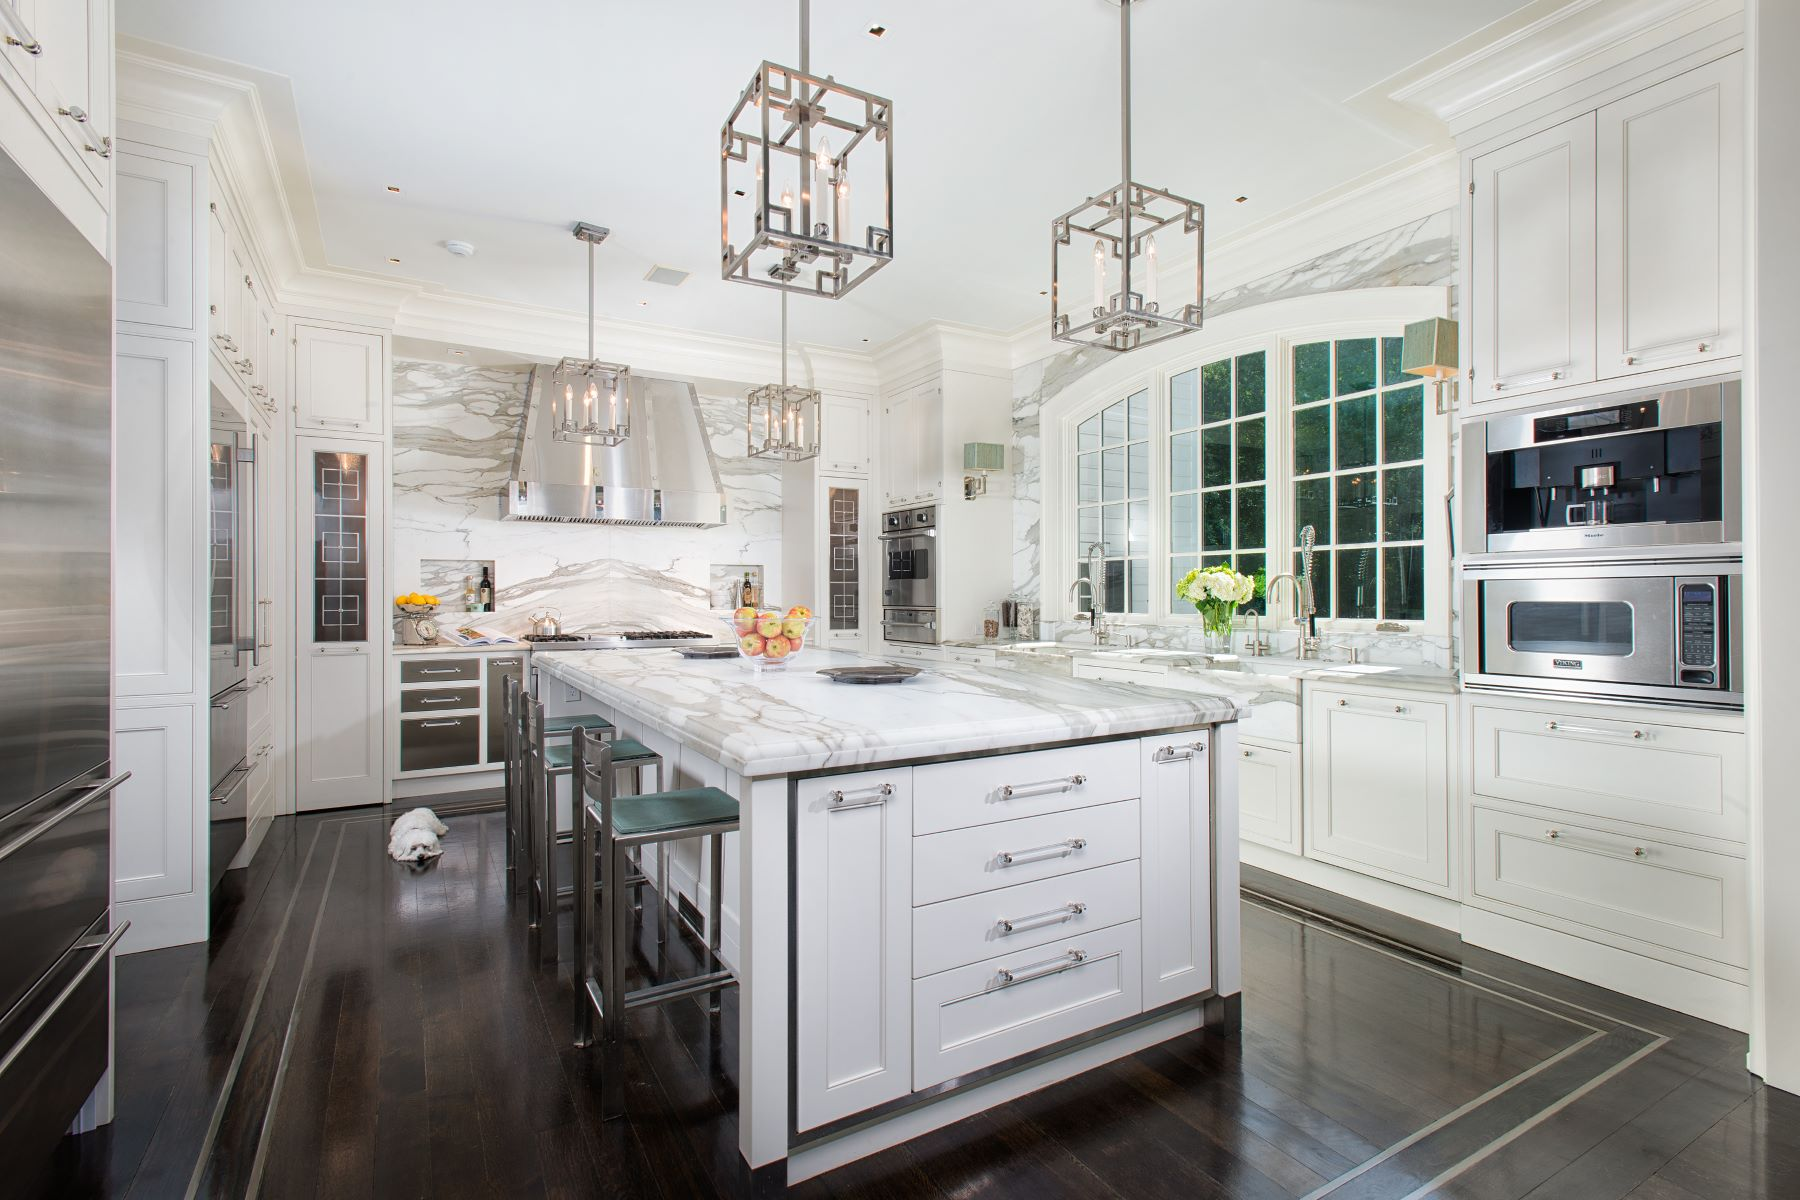 Additional photo for property listing at 33 Sunset Hill Road 33 Sunset Hill Road New Canaan, Connecticut 06840 United States